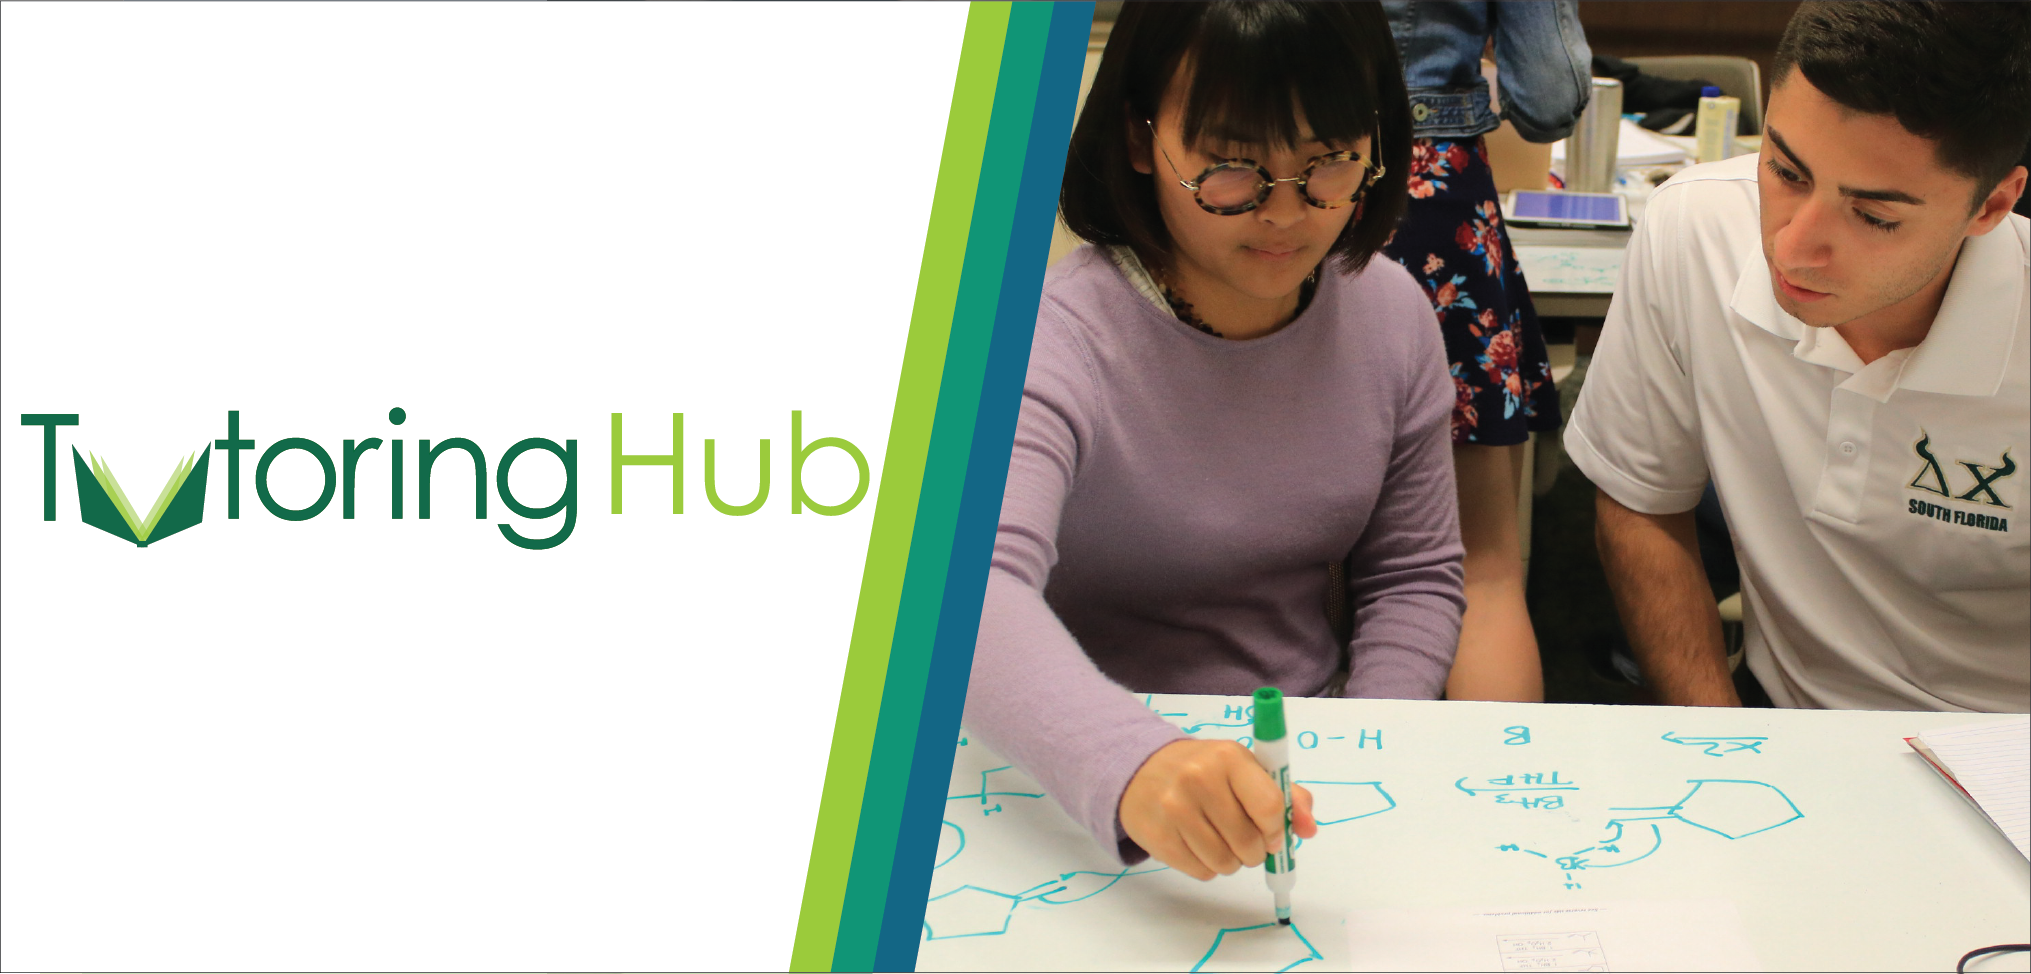 Tutoring Hub Welcome